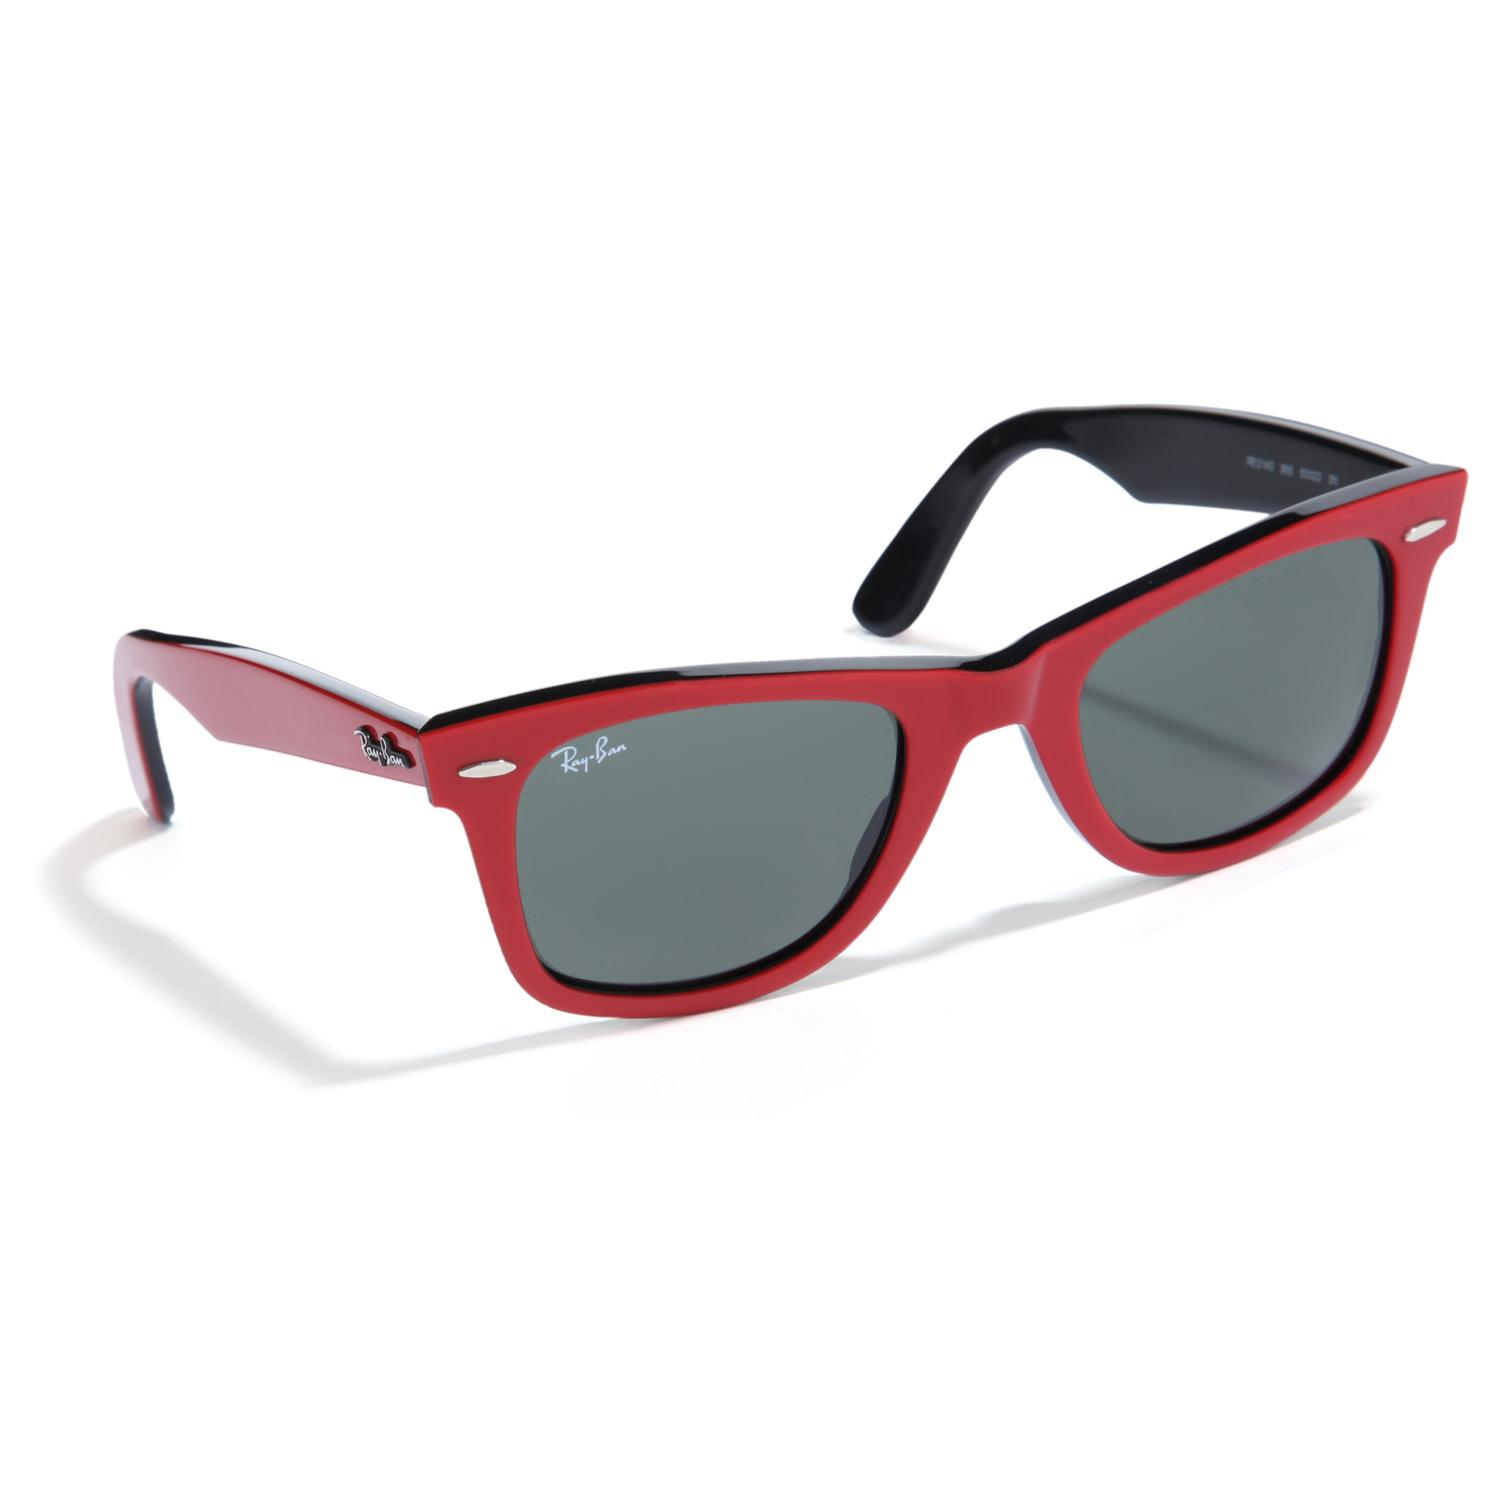 ray-ban-rb-2140-original-wayfarer-50-sunglasses-red-g-15xlt-front.jpg